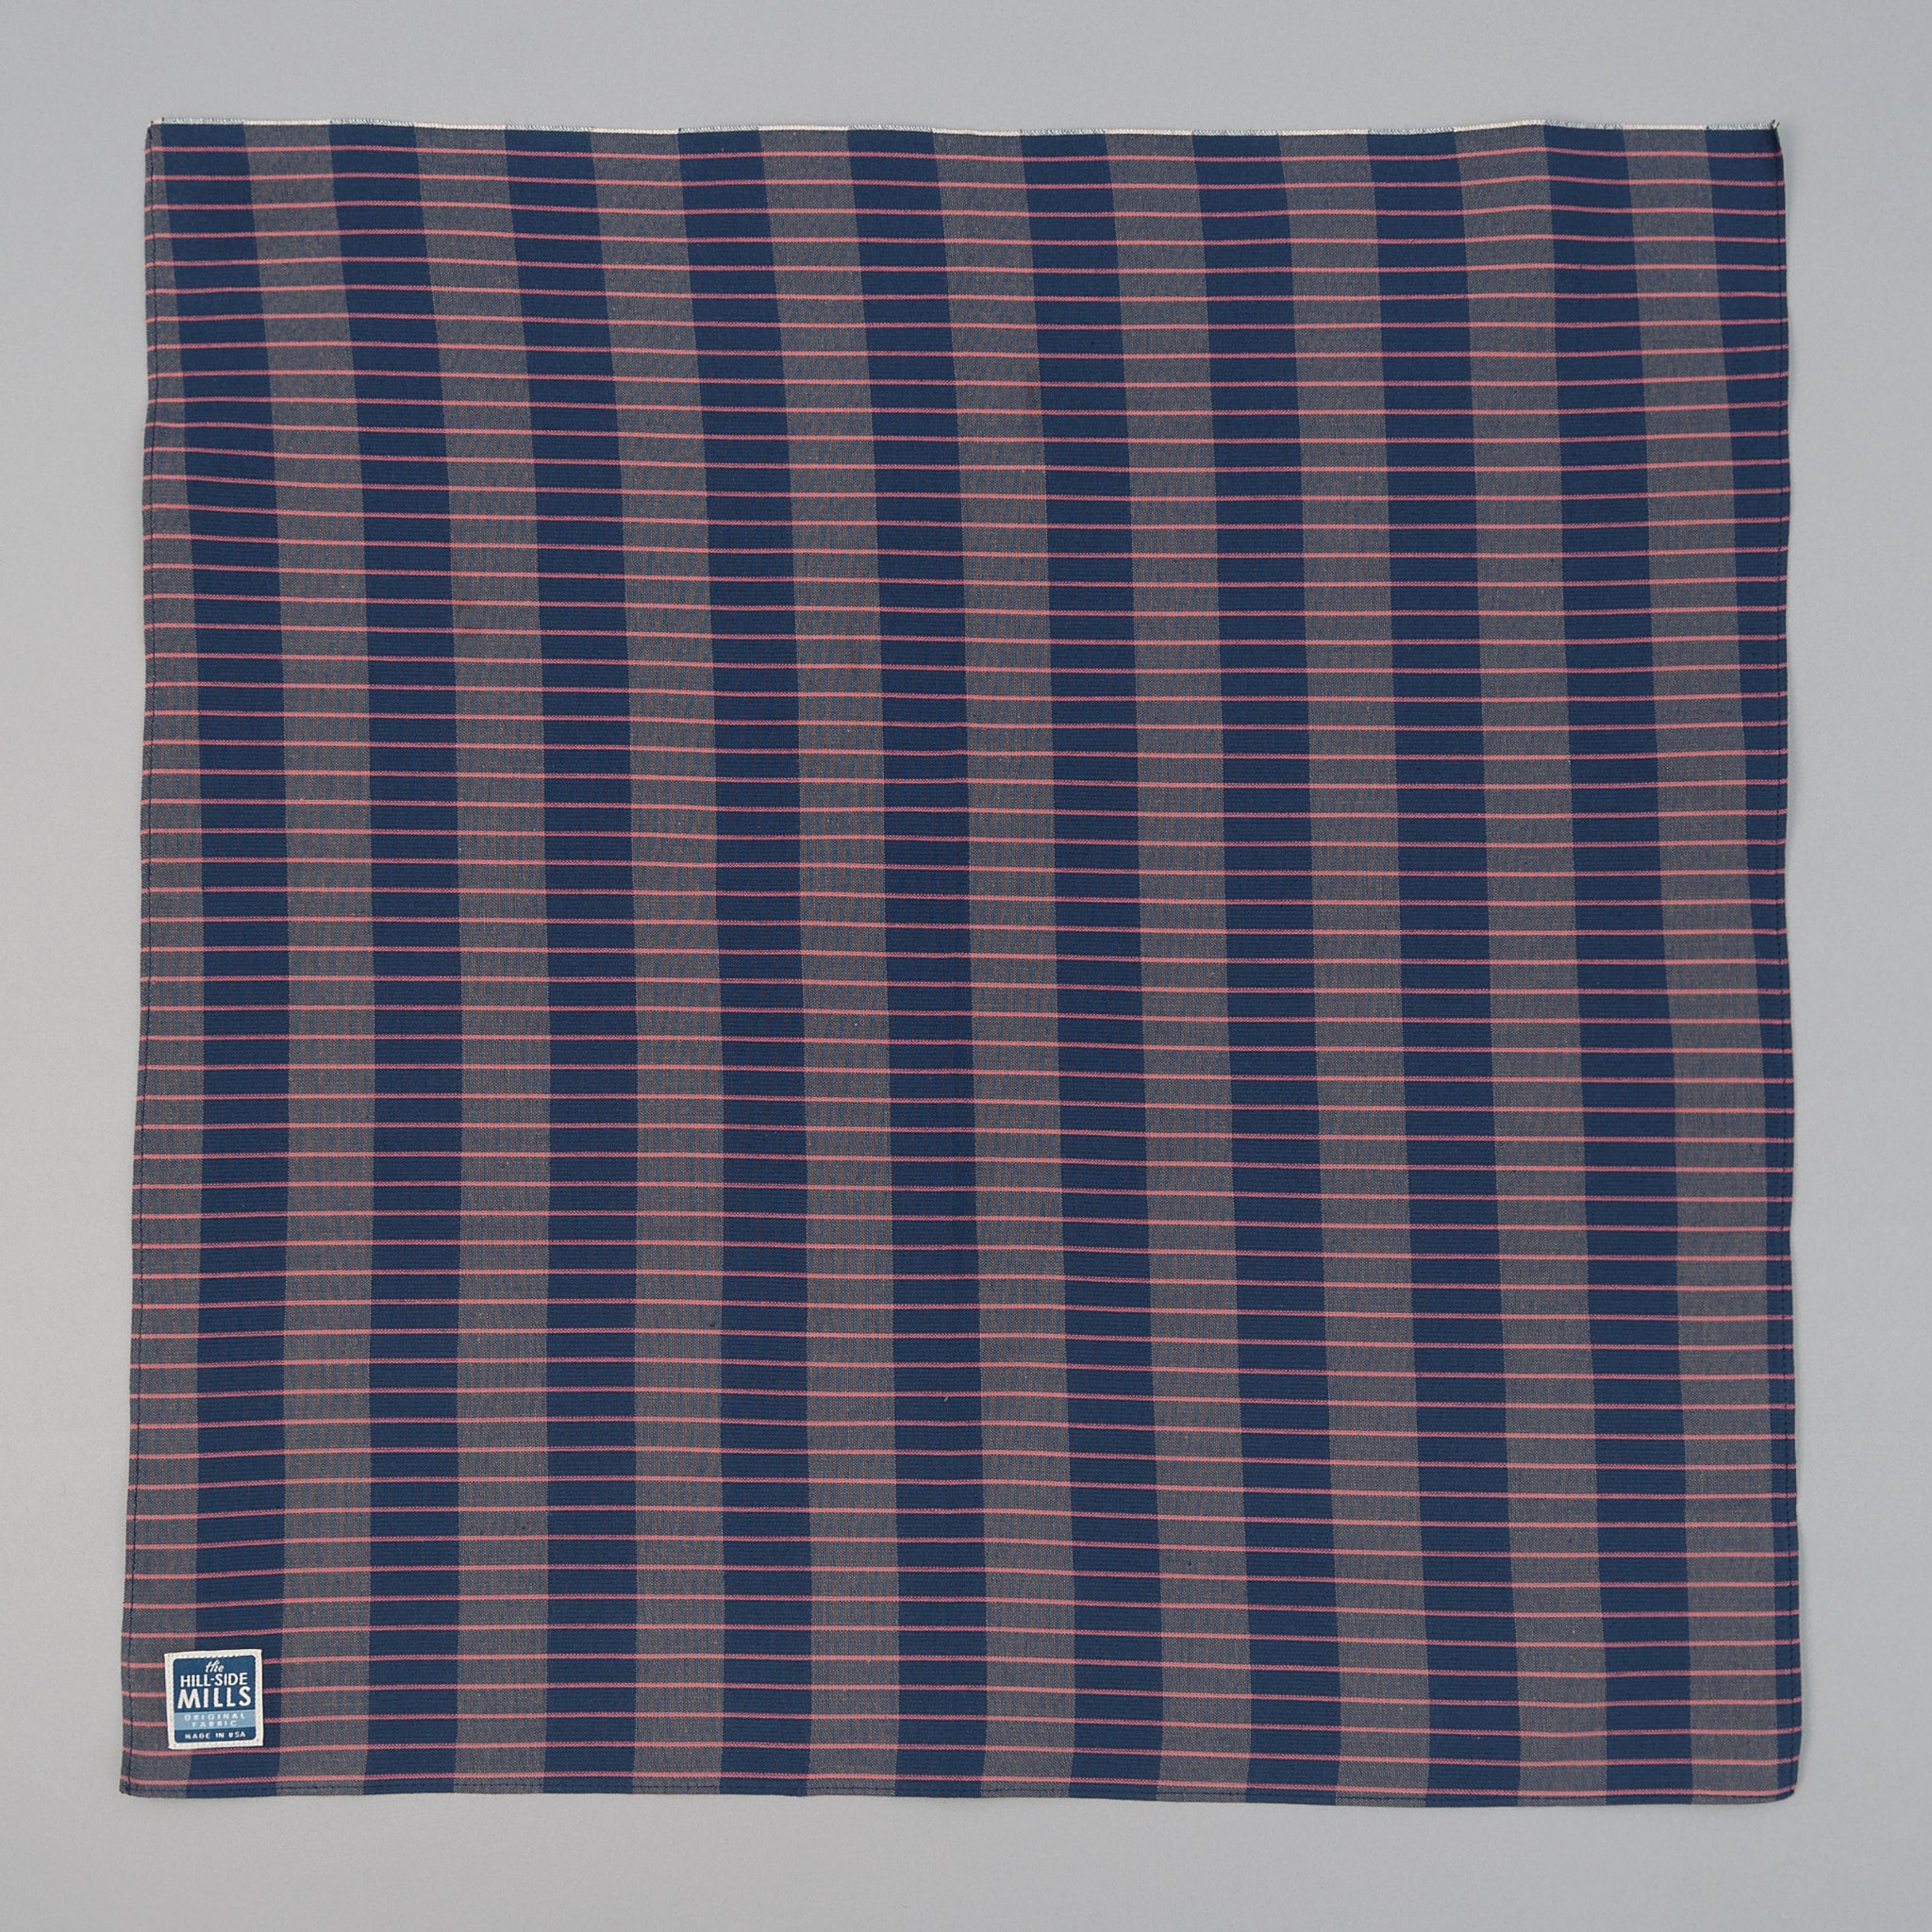 The Hill-Side - Bandana, TH-S Mills Navy Warp Large Grid Check, Beige & Coral - BA1-371 - image 1